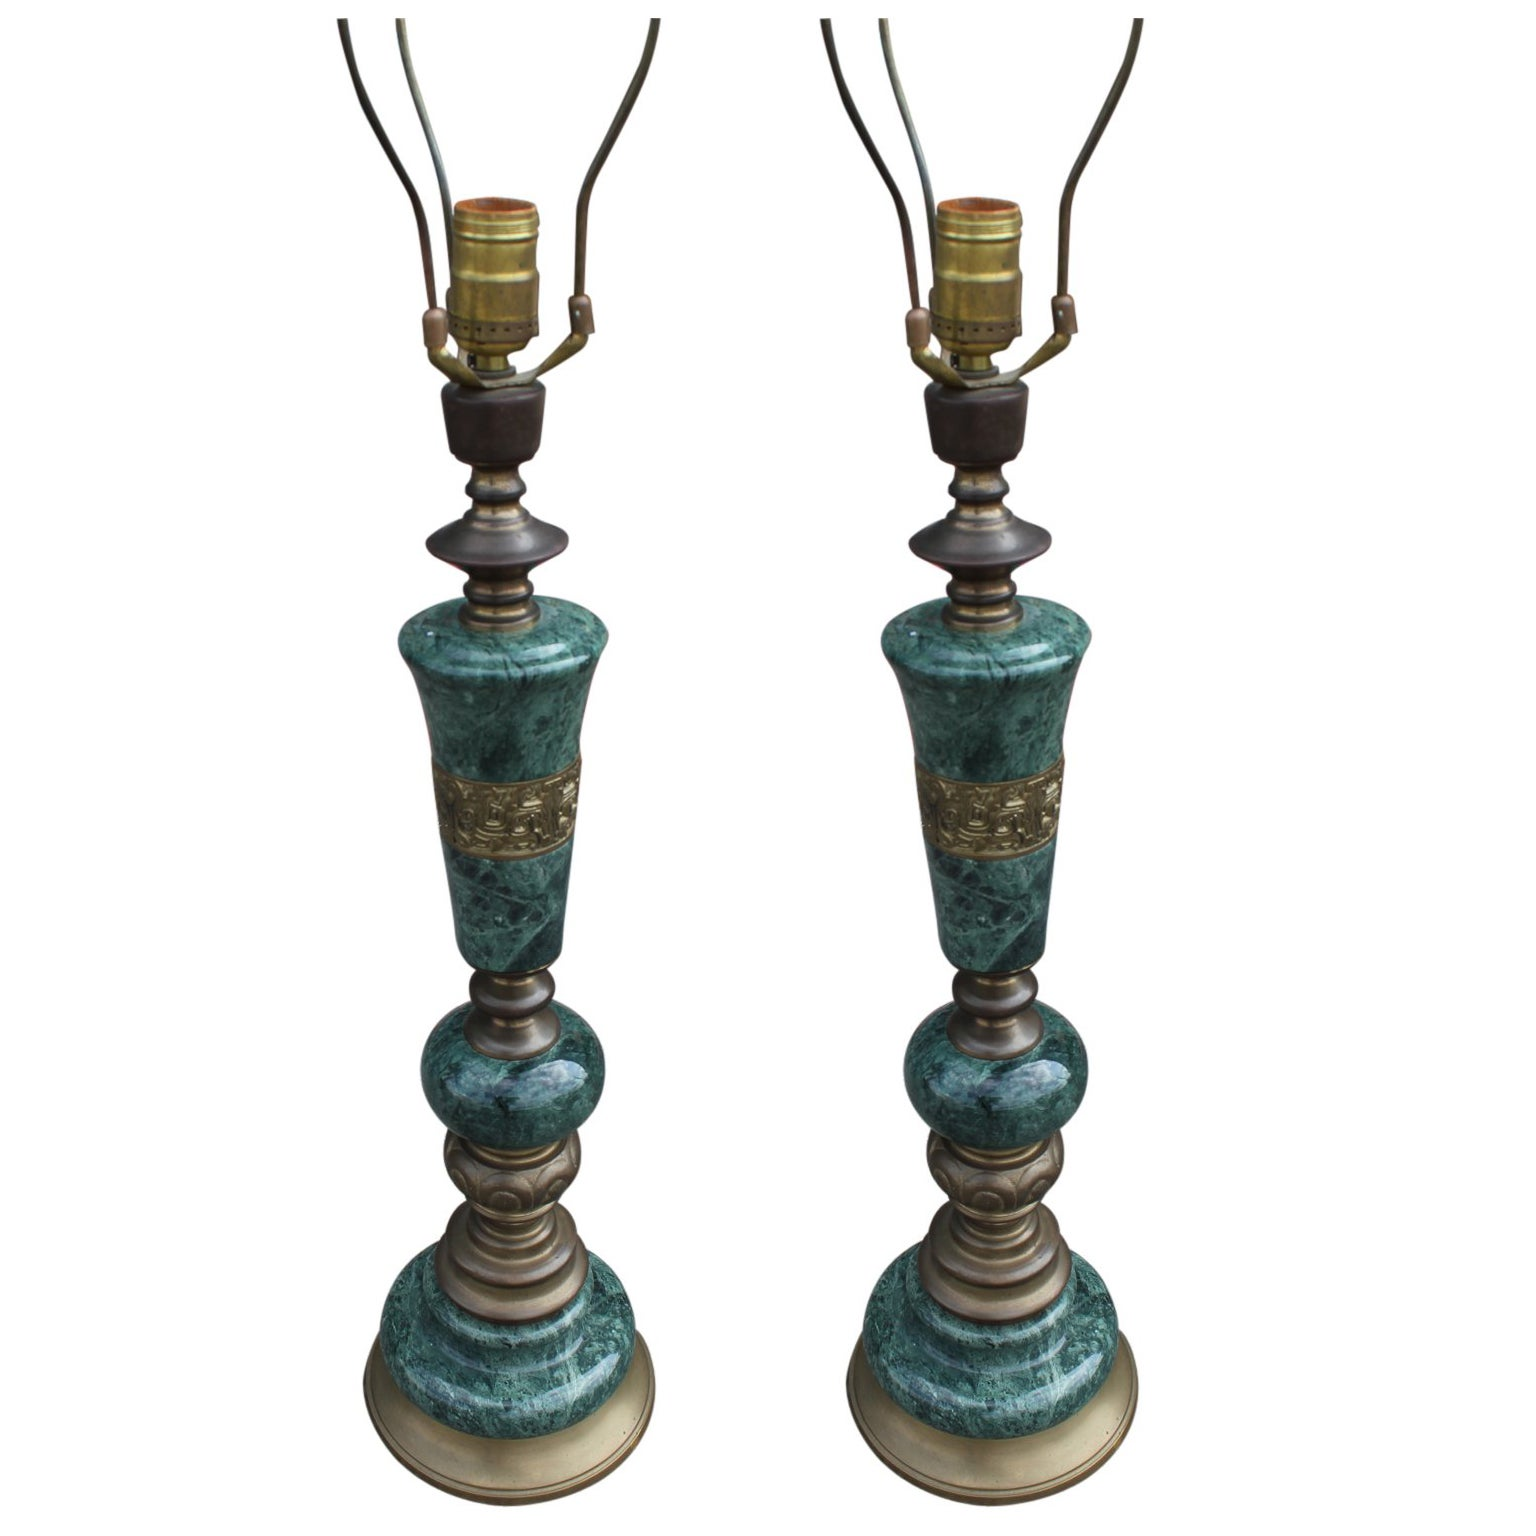 Pair of Green Marble and Brass Modern Table Lamps